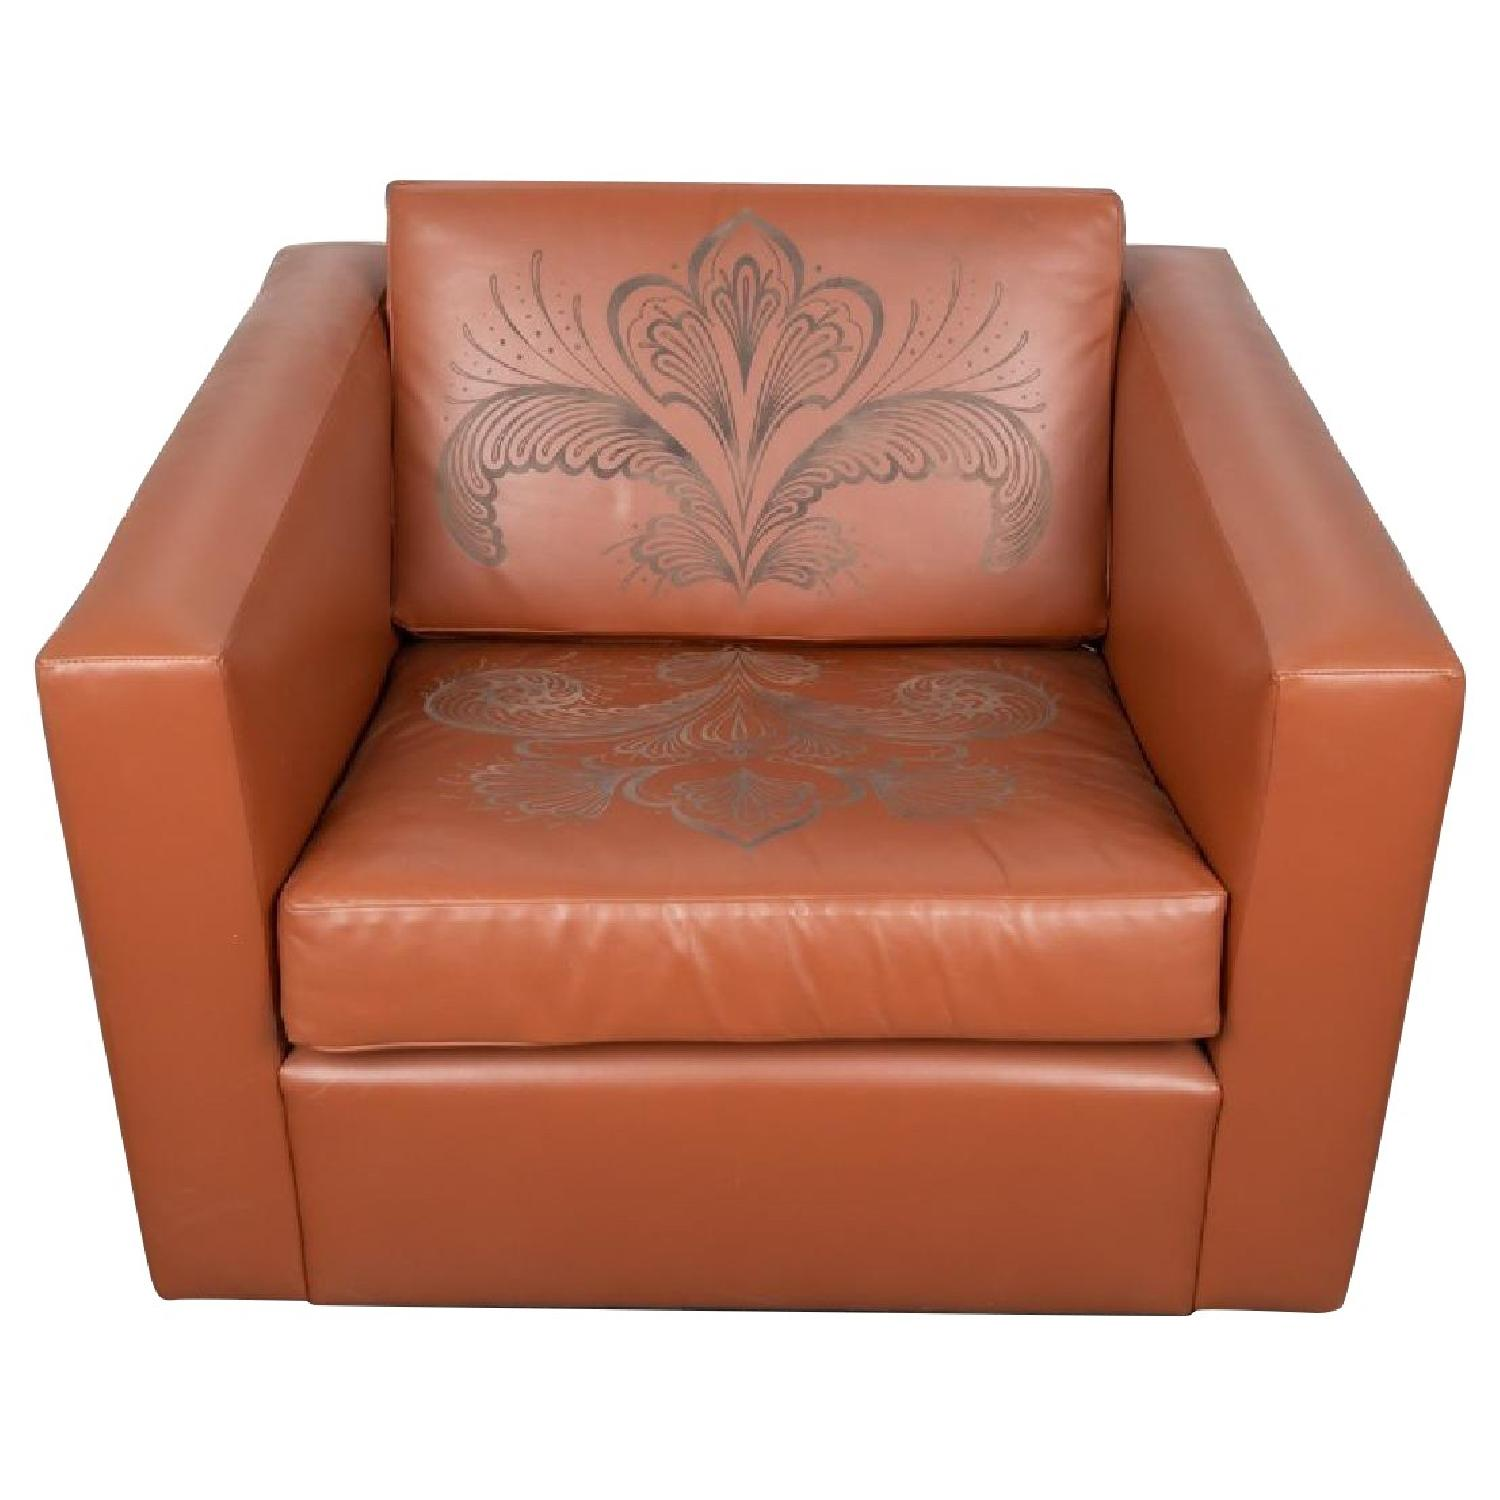 ABC Carpet and Home Engraved Leather Accent Chairs - image-0